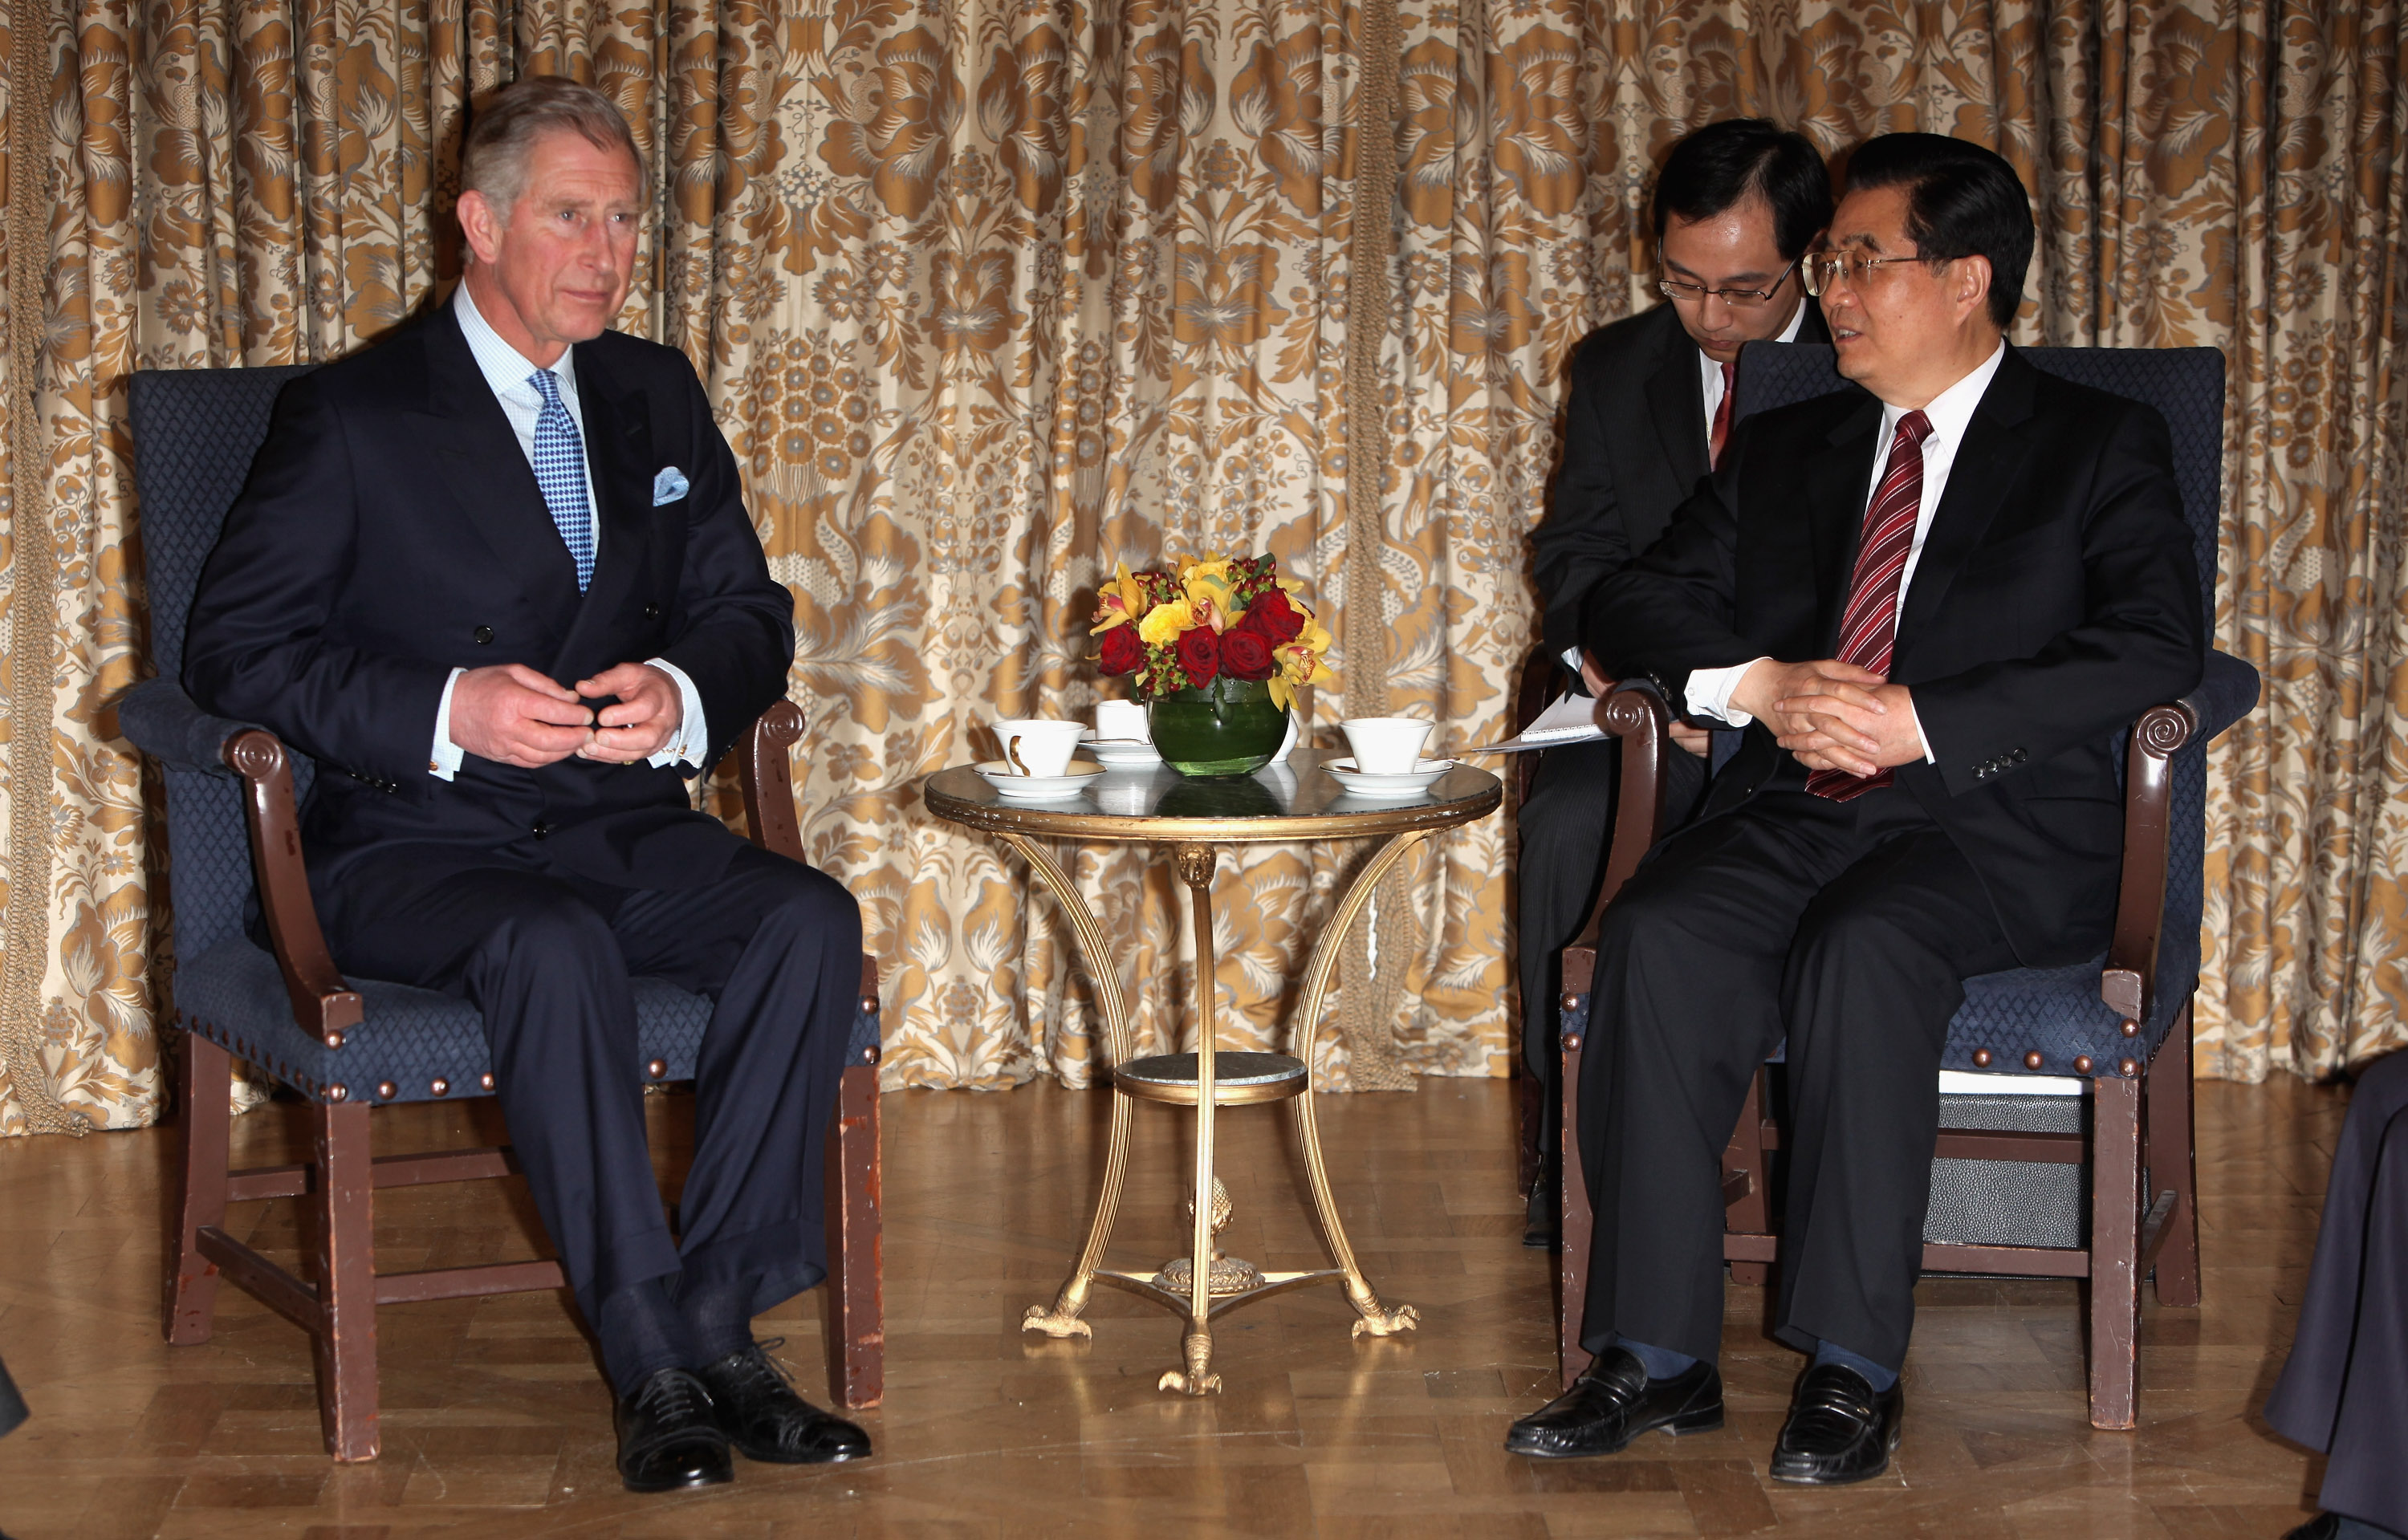 The Prince of Wales, left, speaks with then Chinese President Hu Jintao on April 2, 2009, in London